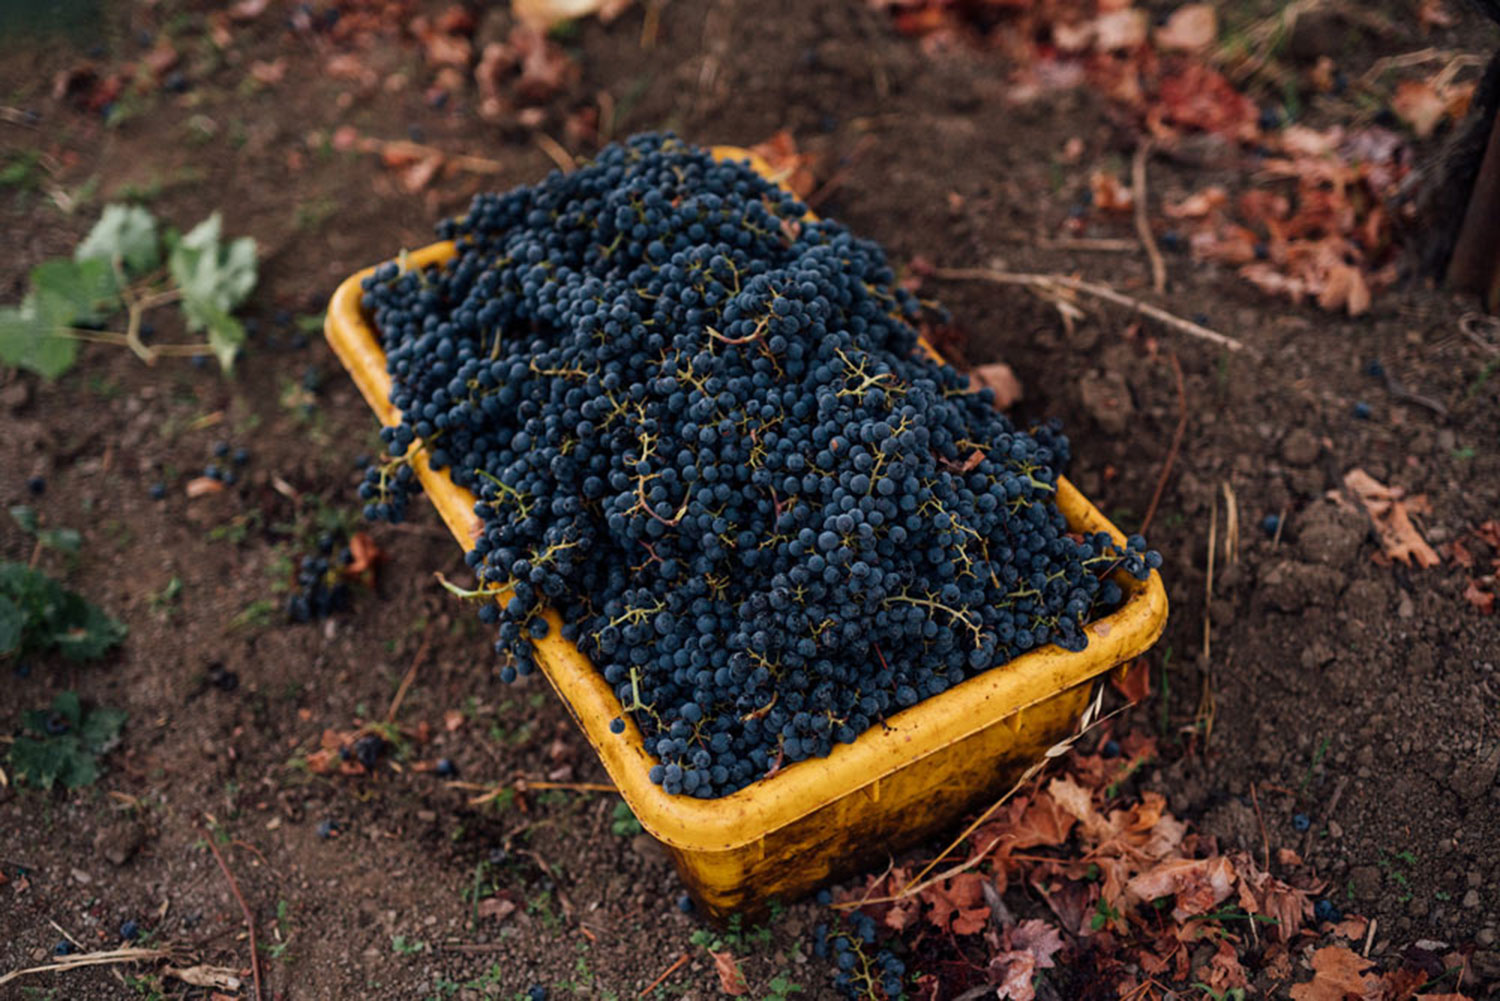 A wine lug full of cabernet sauvignon grapes just harvested in the vineyards